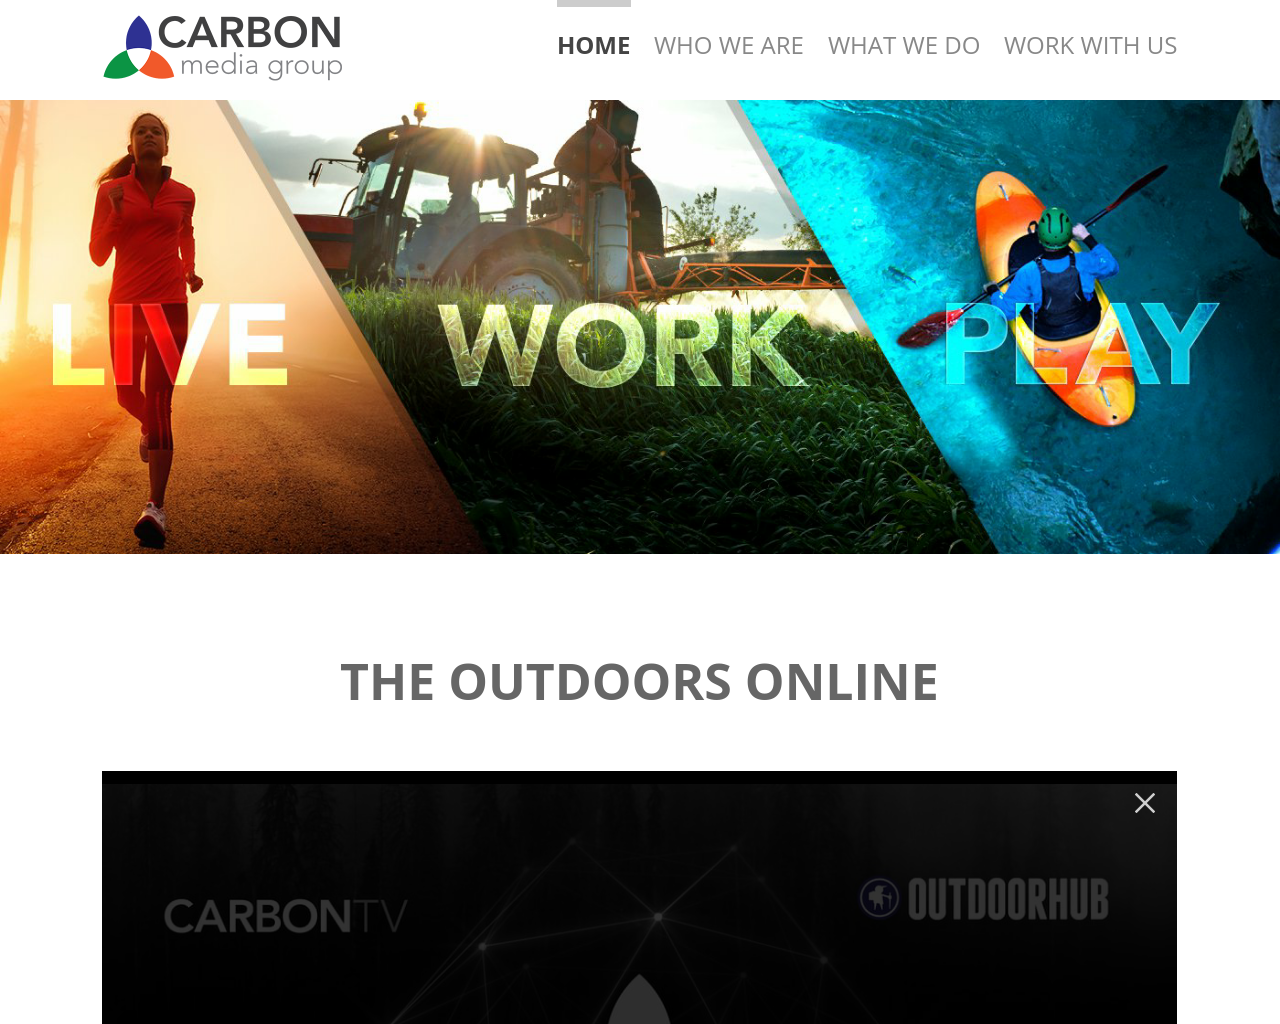 Carbon-Media-Group-Advertising-Reviews-Pricing